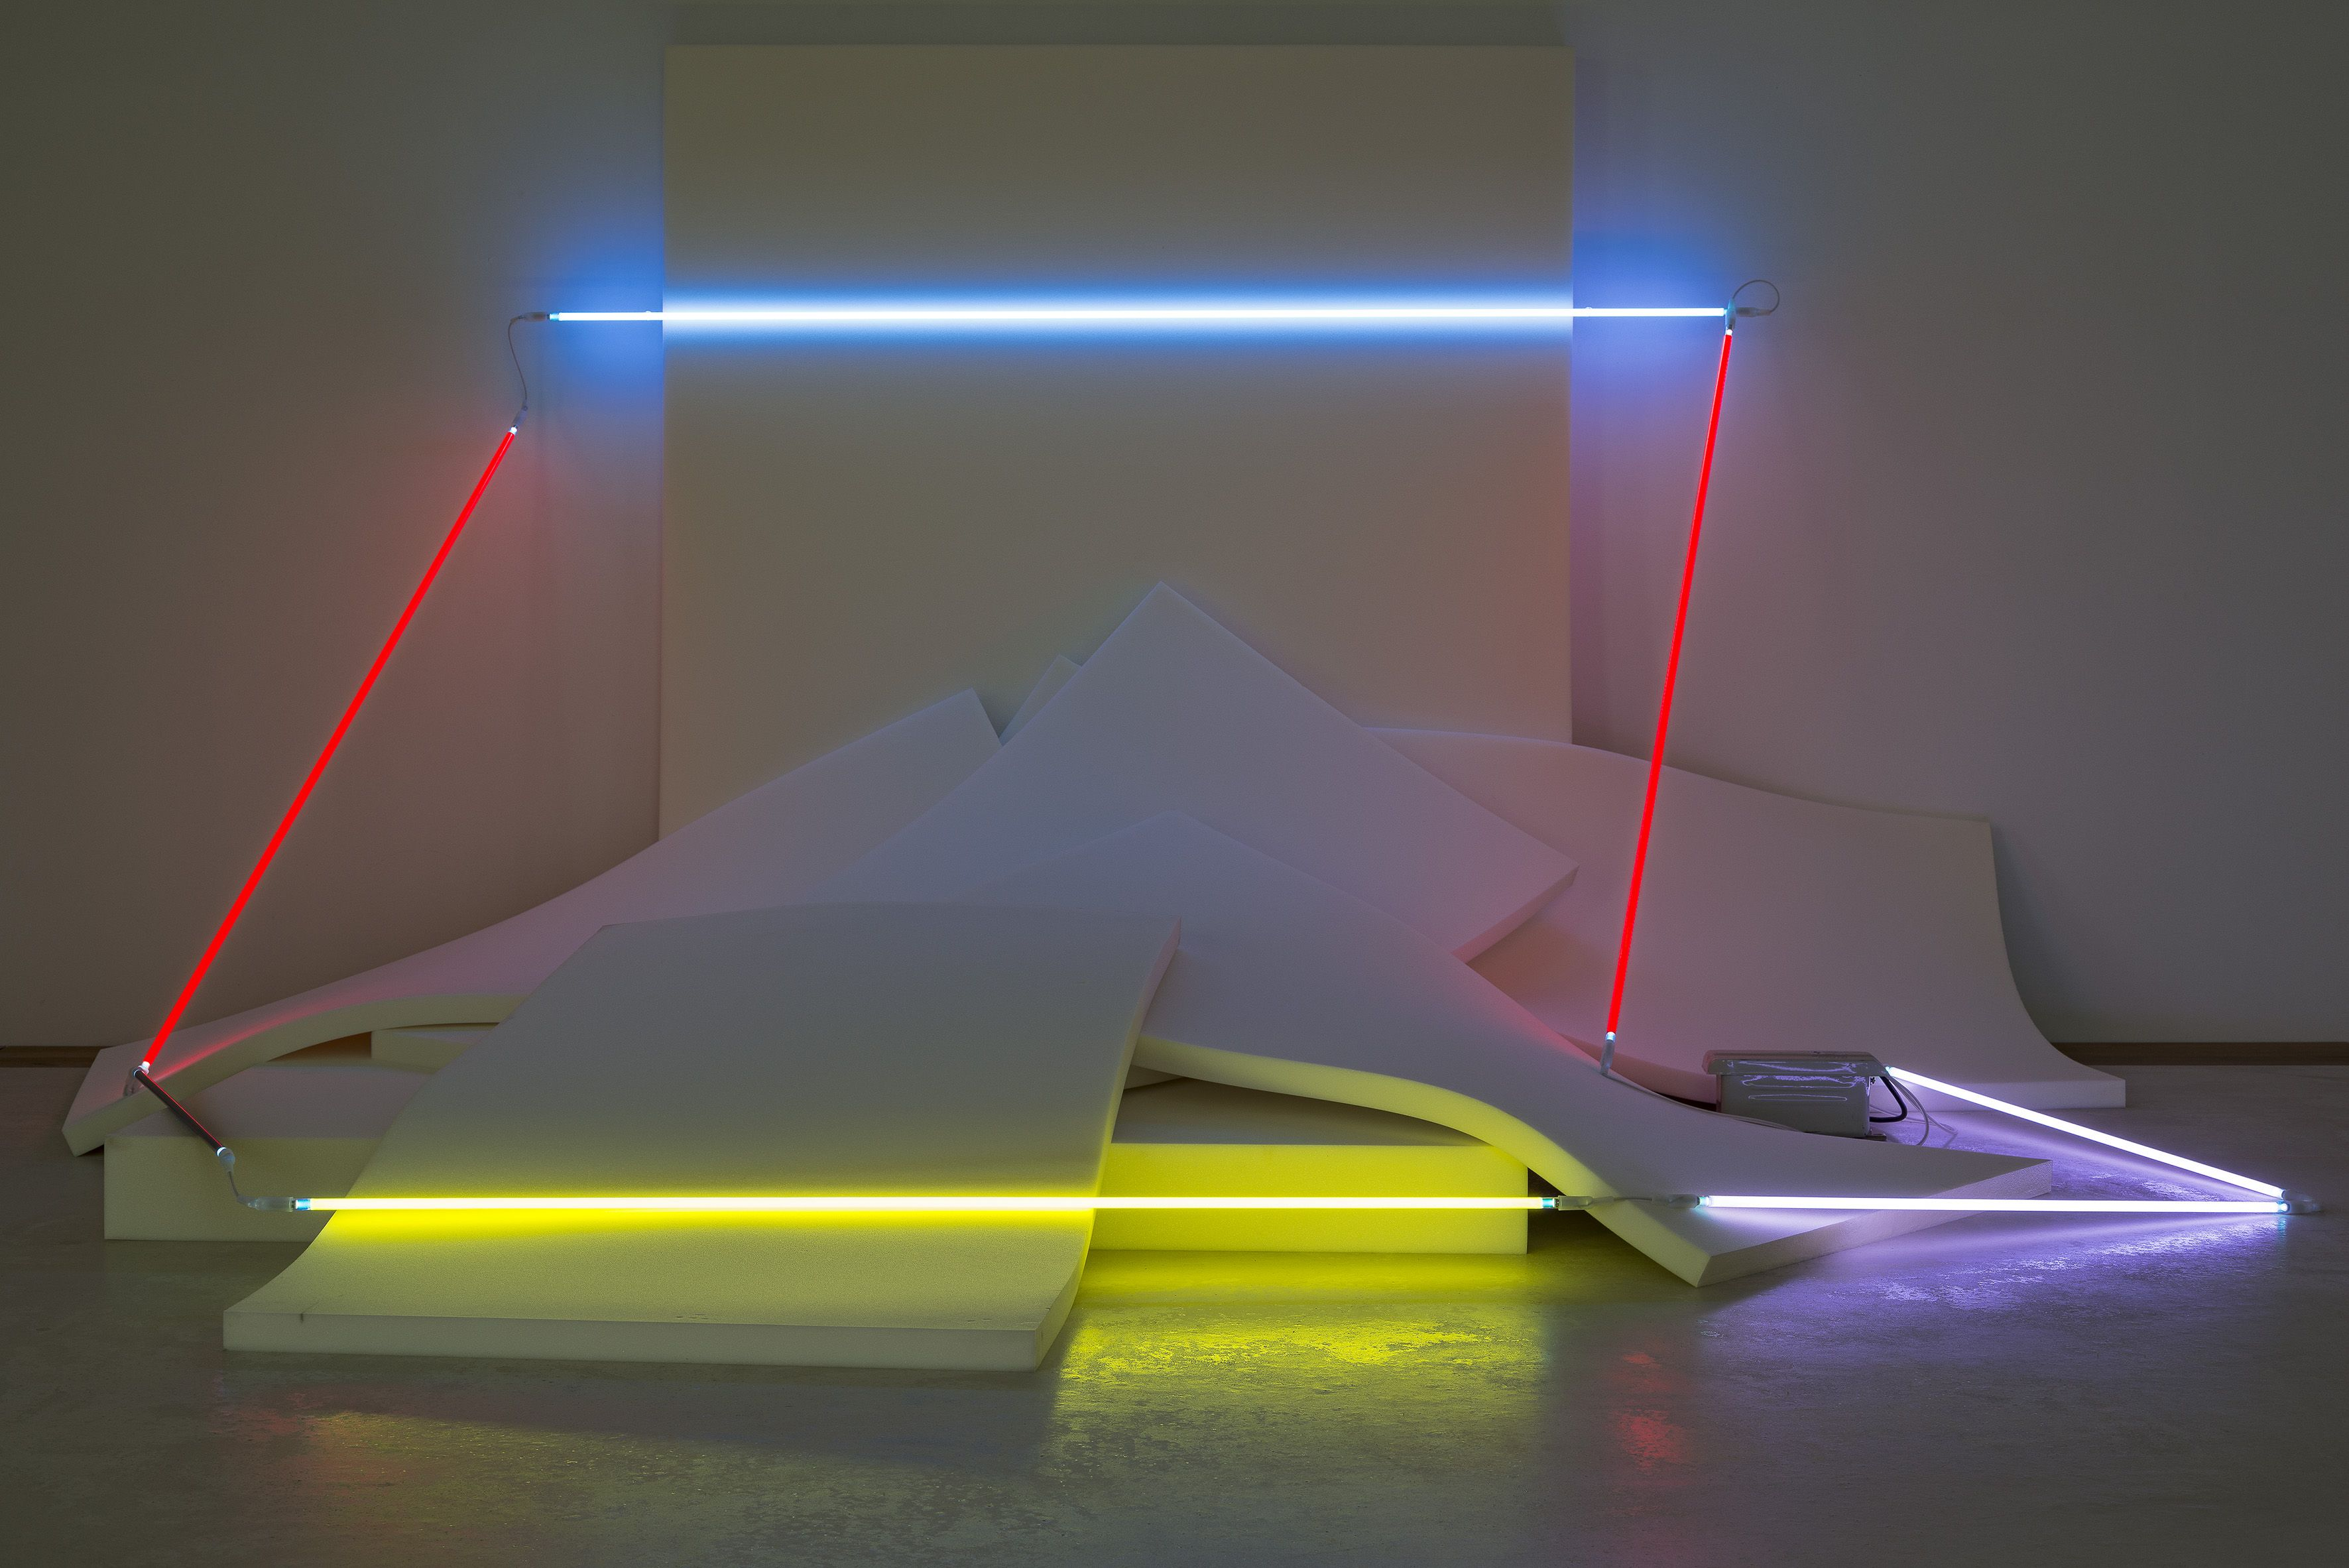 The Whitechapel Gallery presents Keith Sonnier: Light Works (10 June - 11 September 2016)